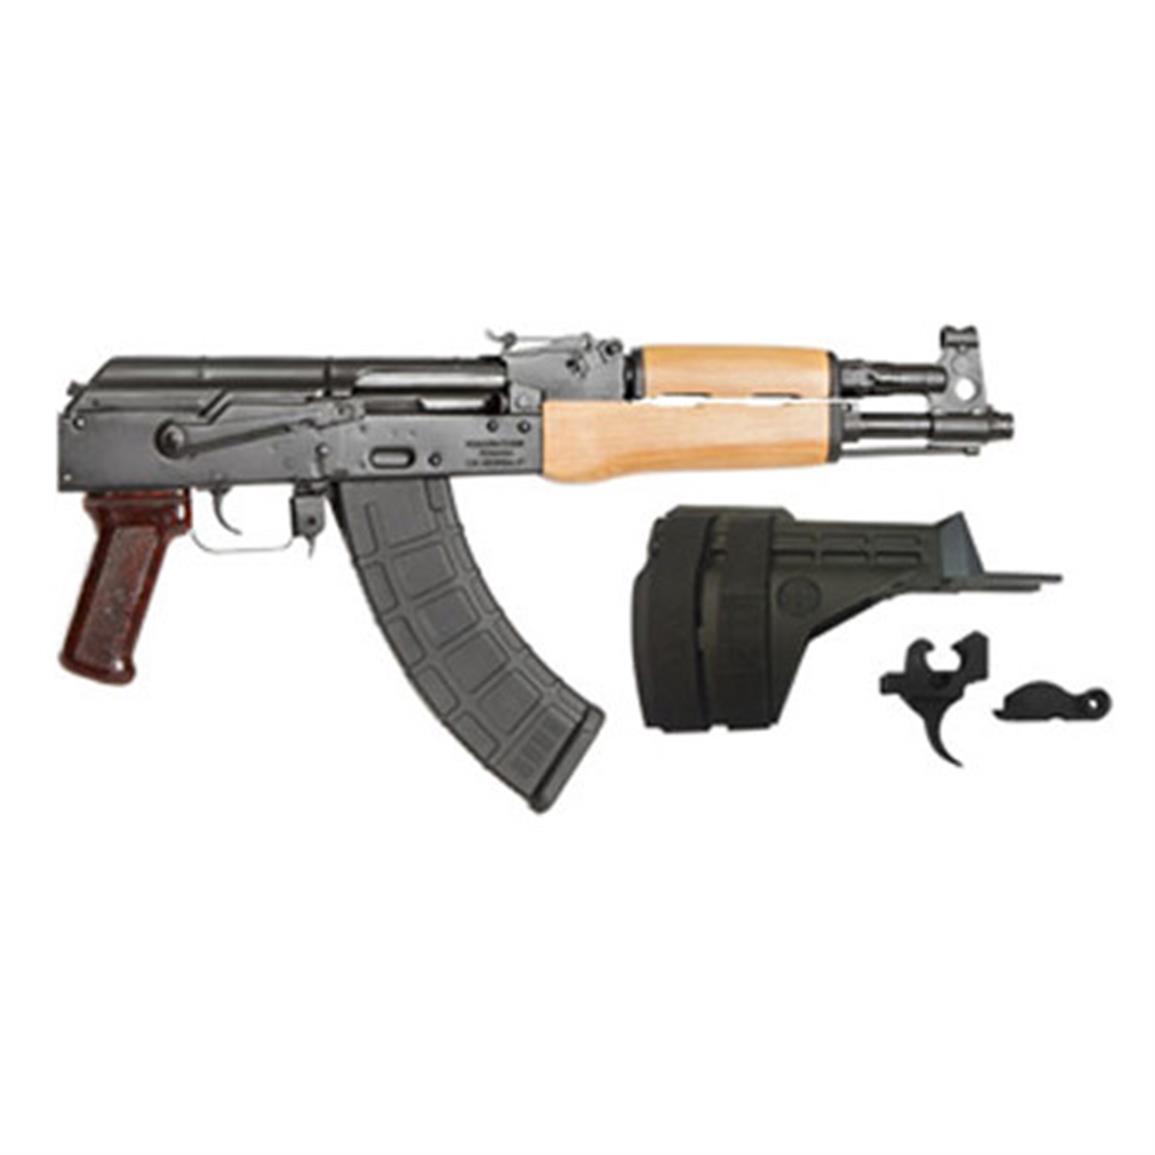 "Century Arms Draco AK Pistol, Semi-automatic, 7.62x39mm, 12.25"" Barrel, 30 Rounds"